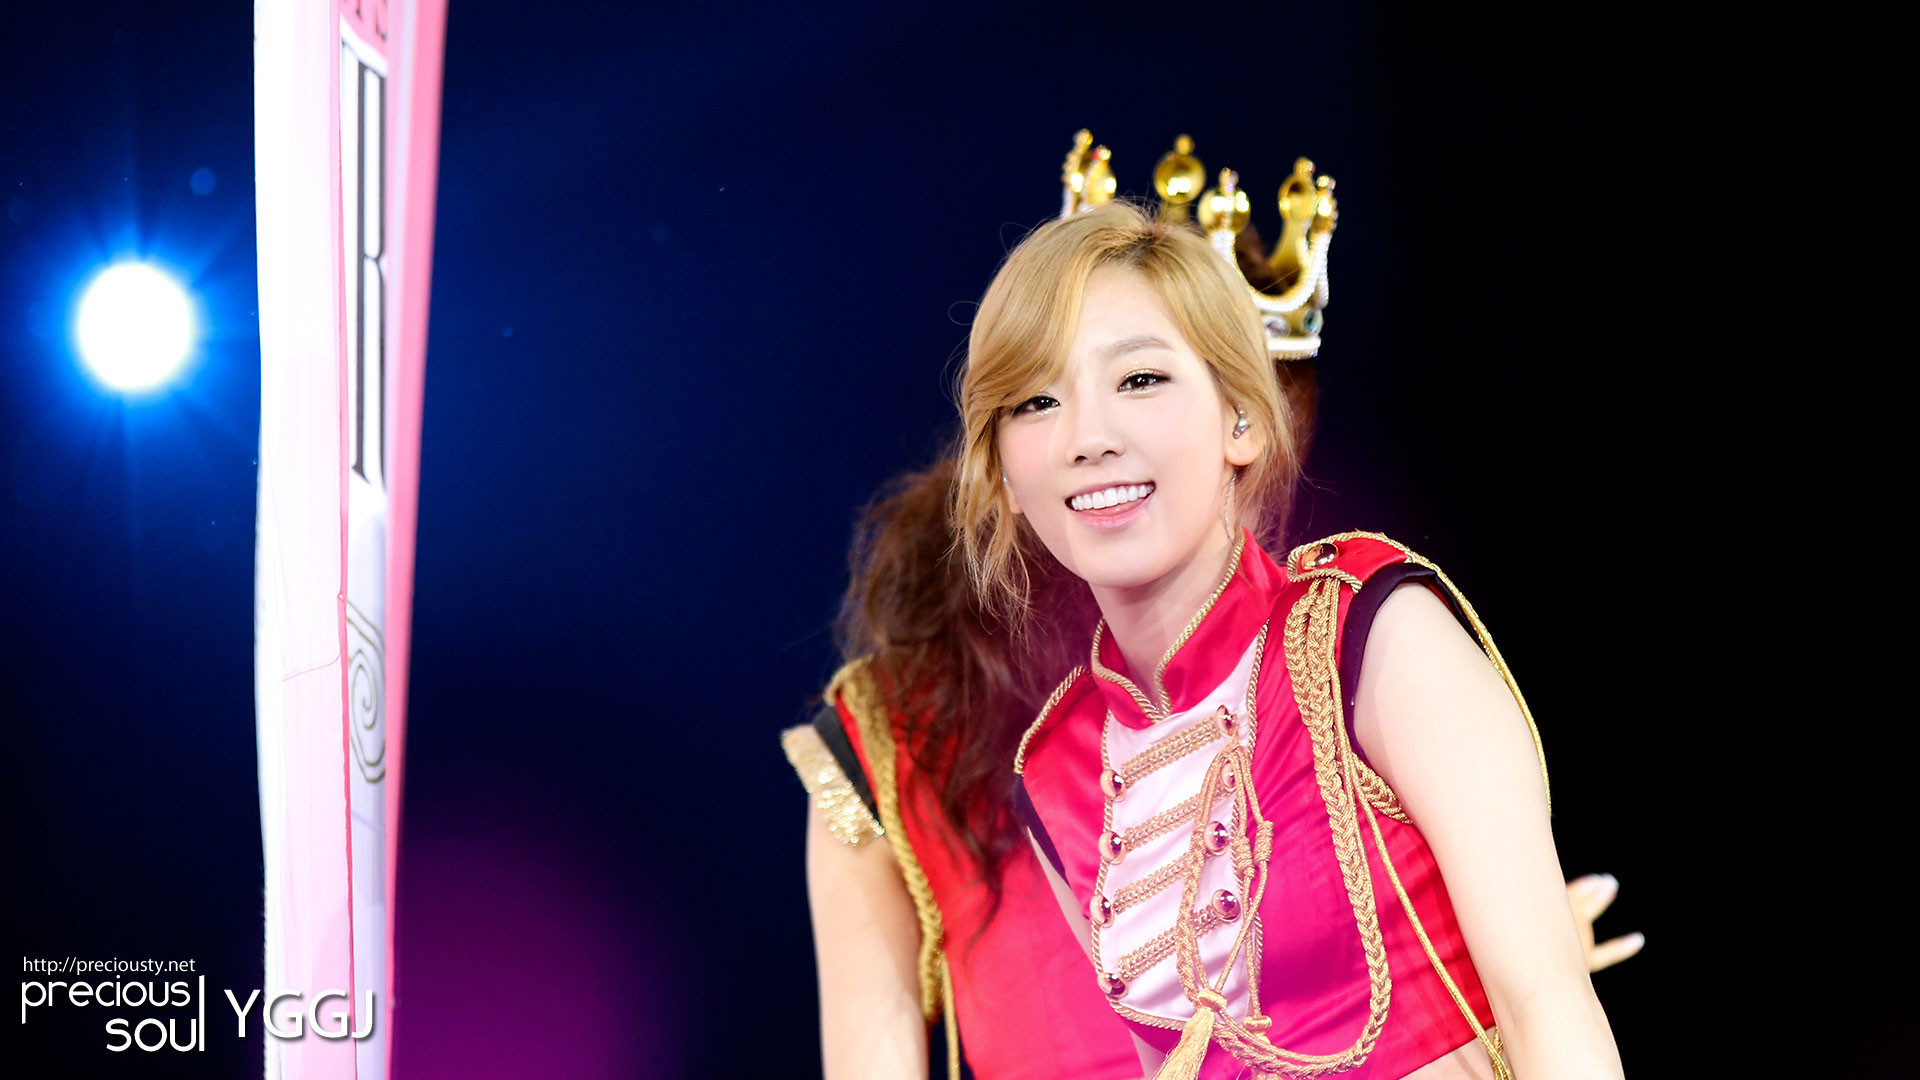 Taeyeon (SNSD) images TAEYEON HD wallpaper and background photos .